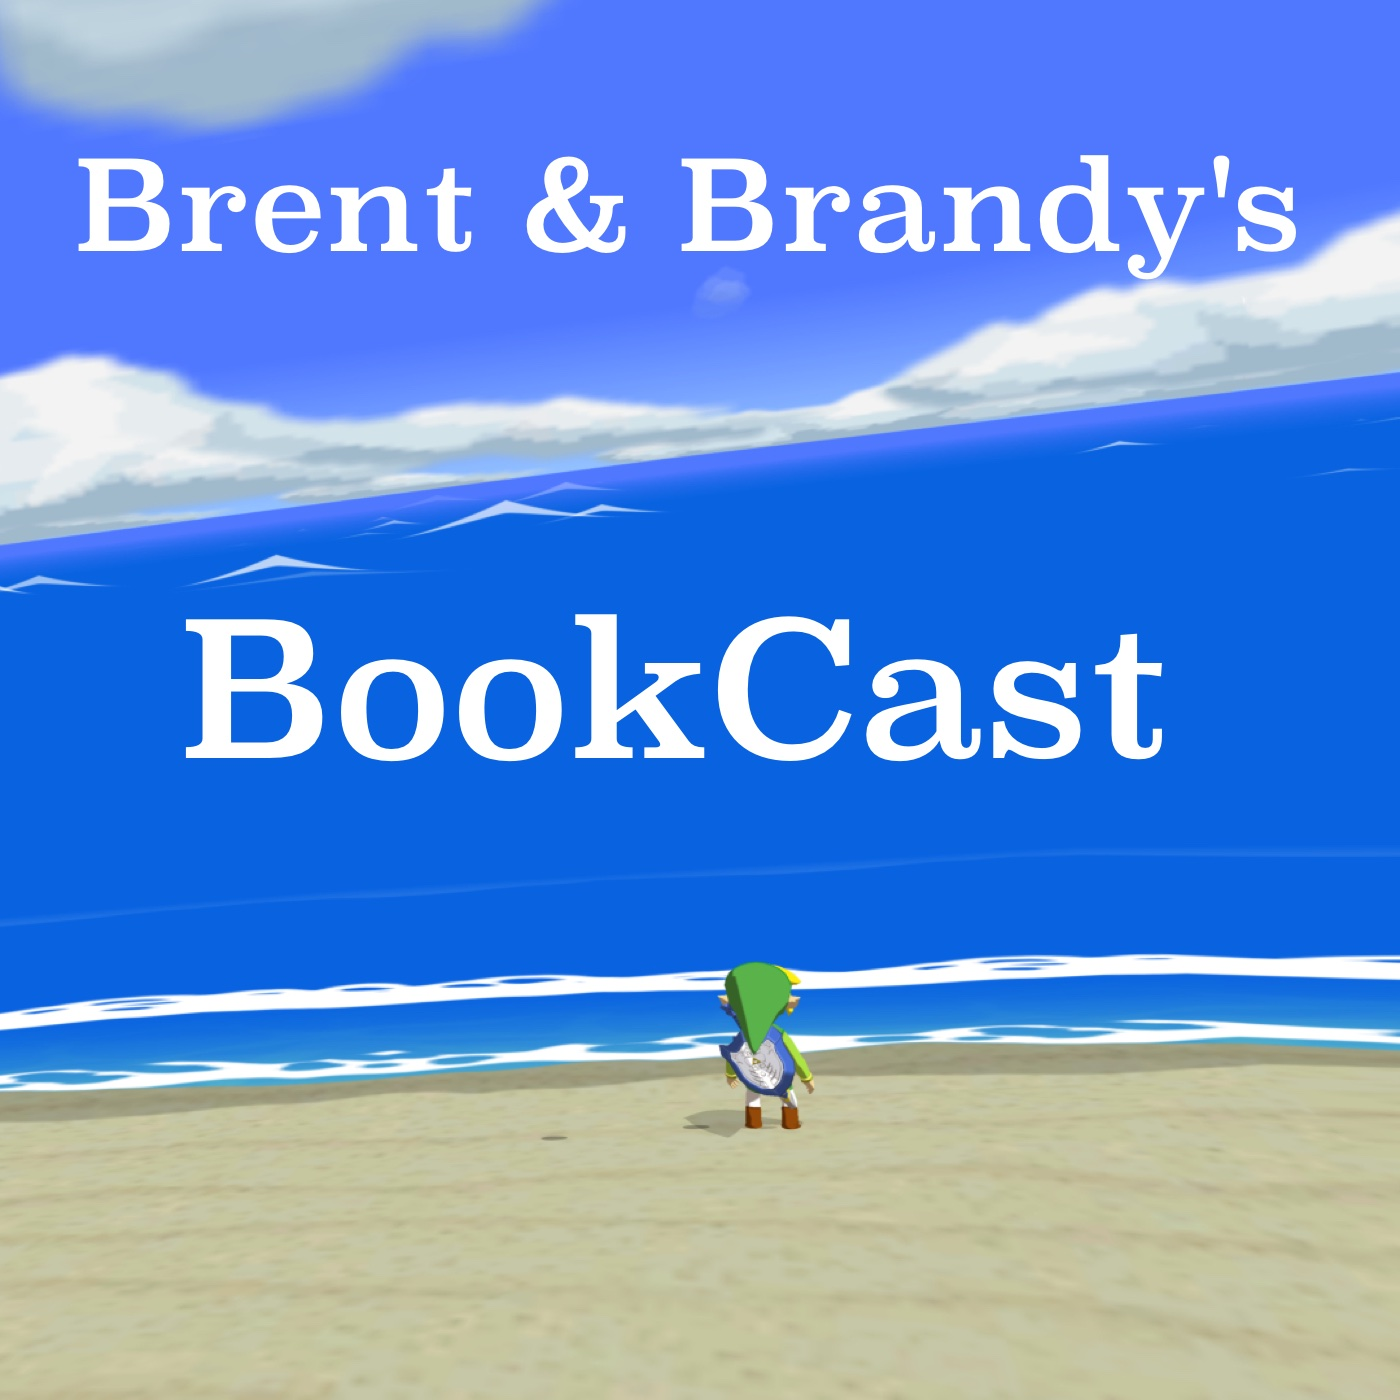 Brent & Brandy's Bookcast